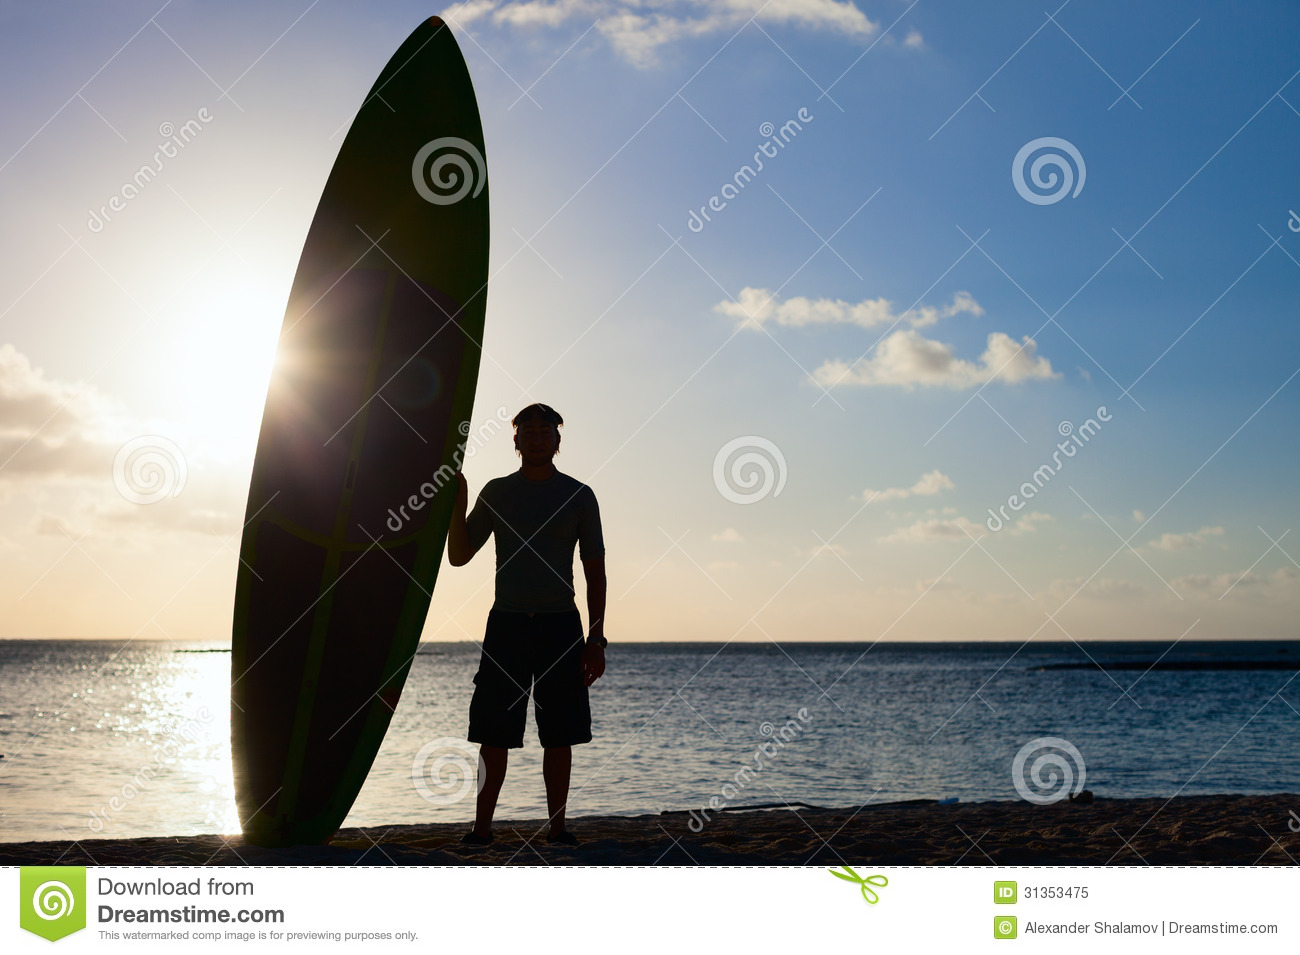 Silhouette Of A Man With Paddle Board Royalty Free Stock